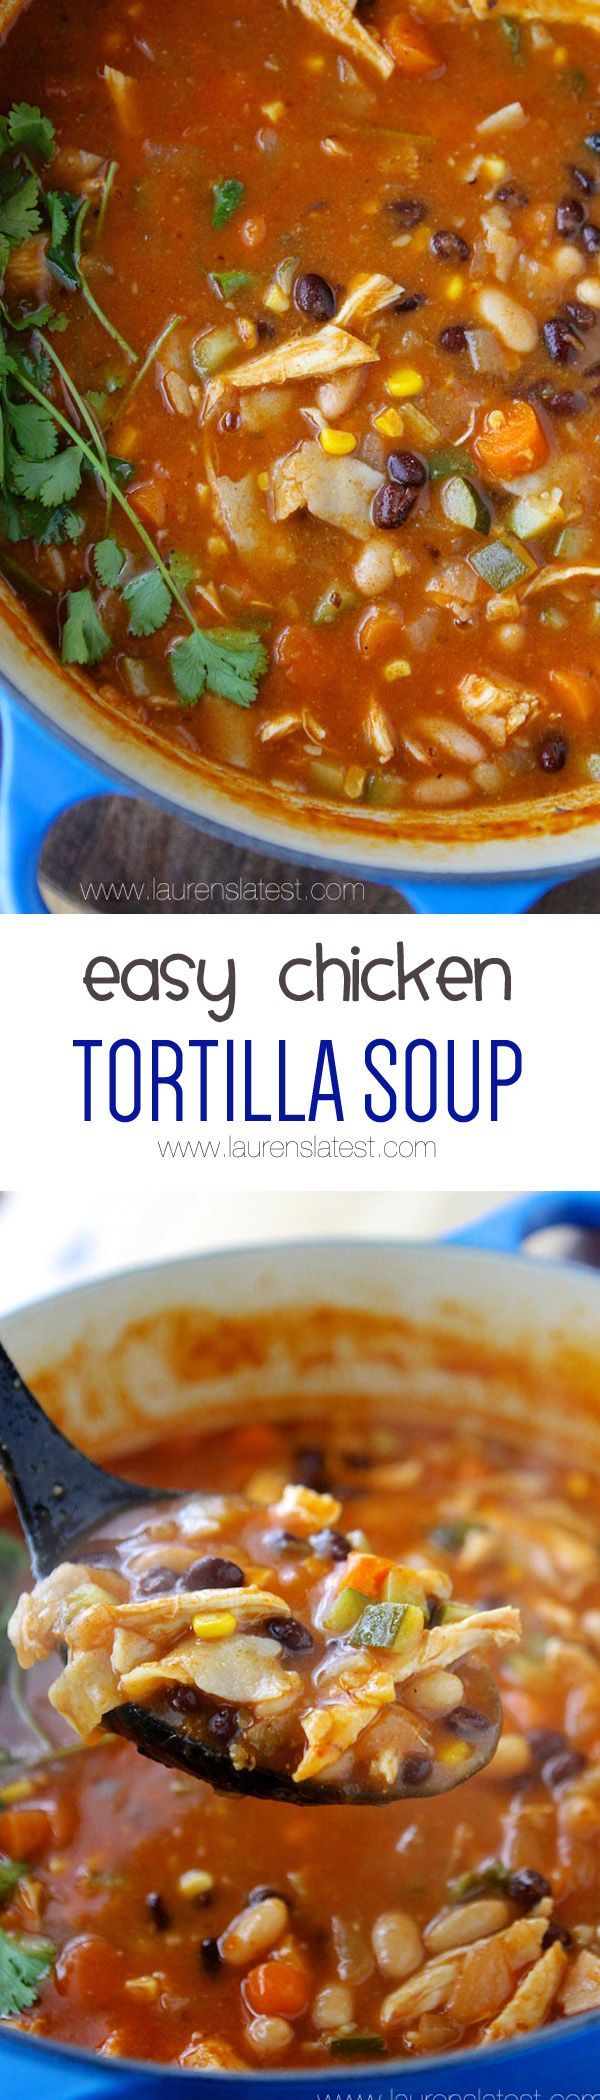 {Easy} Chicken Tortilla Soup! Low-fat, totally healthy, packed with veggies and my kids will actually eat this!! The best recipe for chicken tortilla soup.